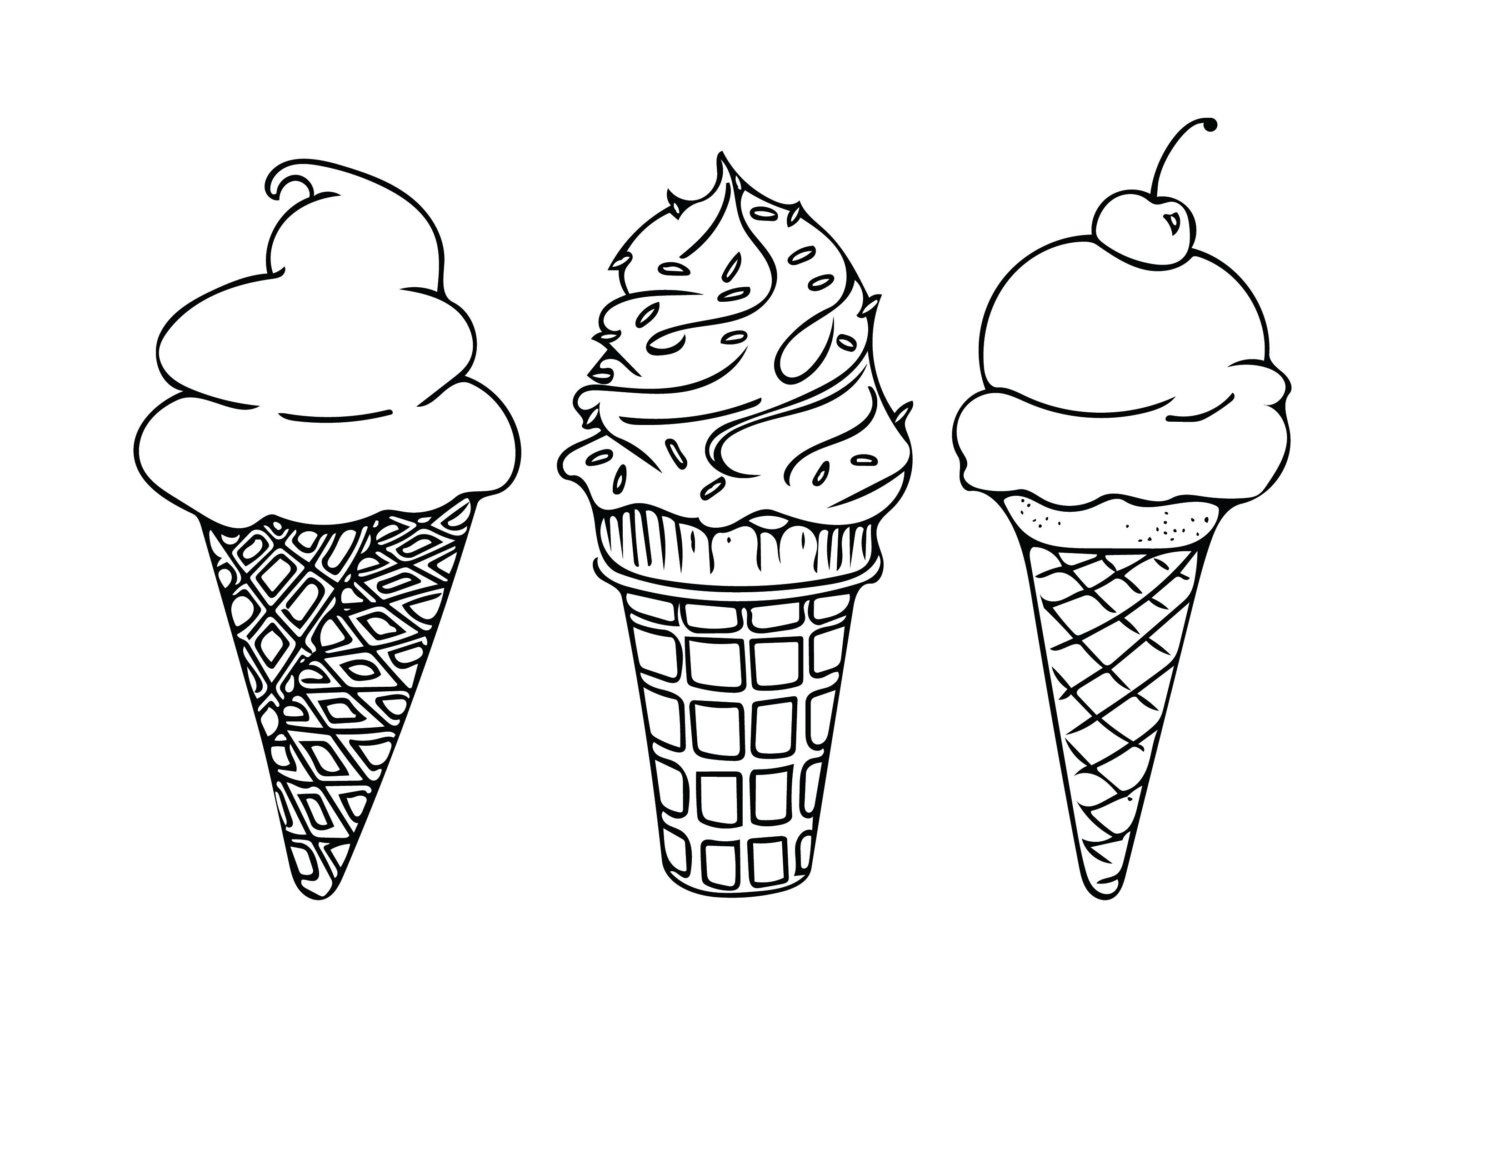 Cool Ice Cream Coloring Pages Ideas | Coloring Pages For Kids | Ice - Ice Cream Cone Template Free Printable